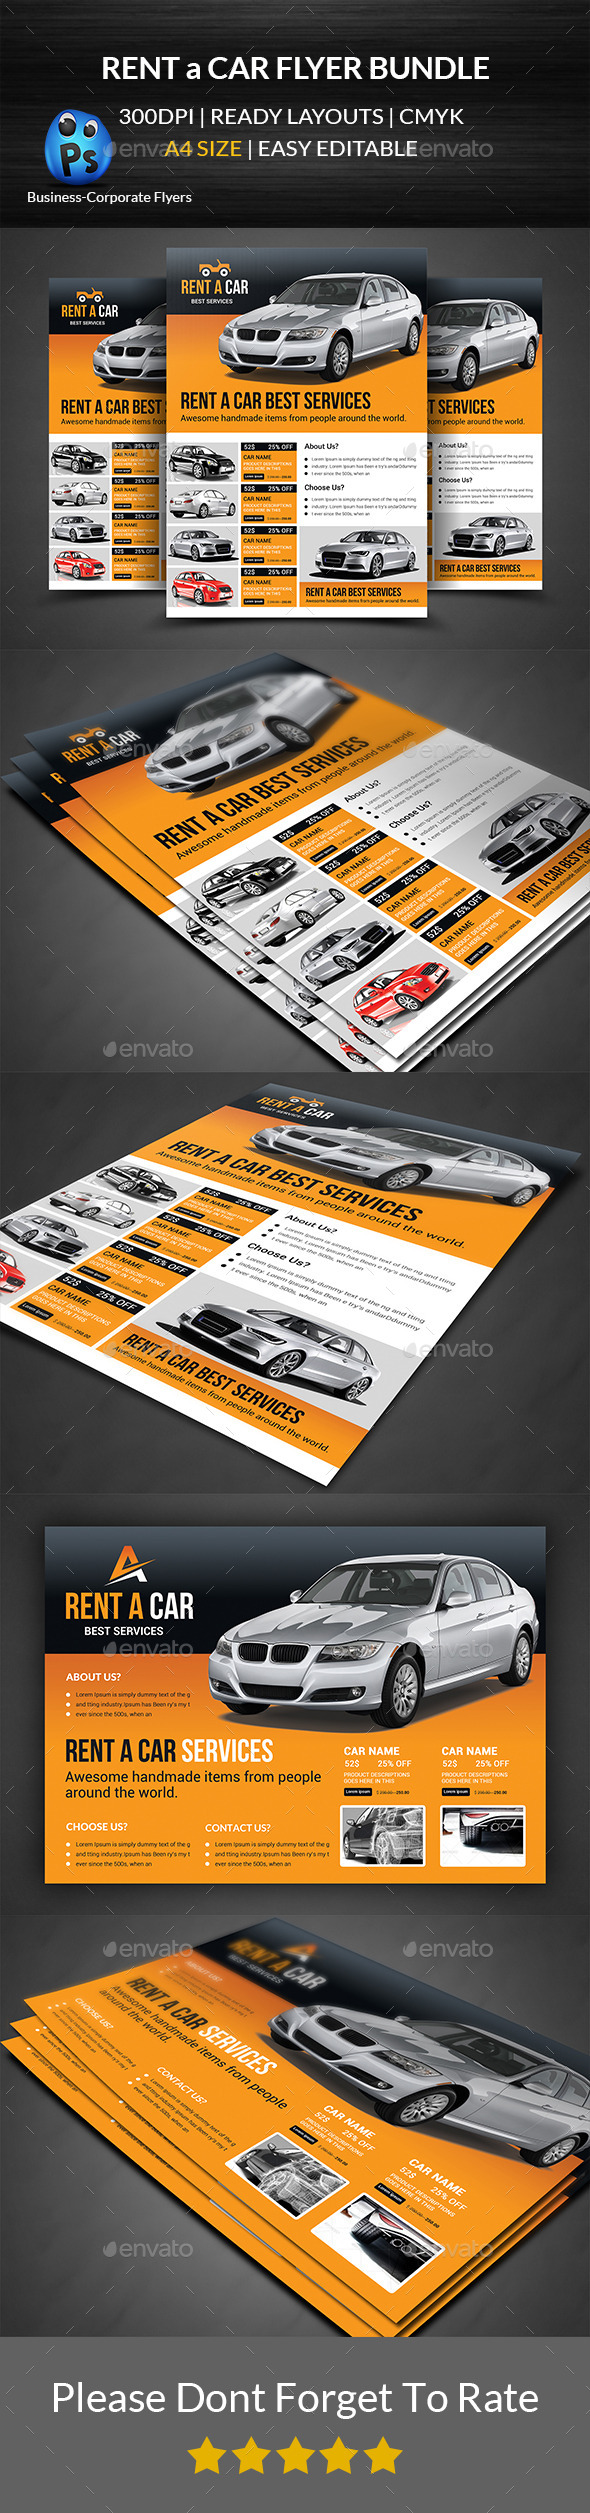 GraphicRiver Rent a Car Flyer Bundle 11932210